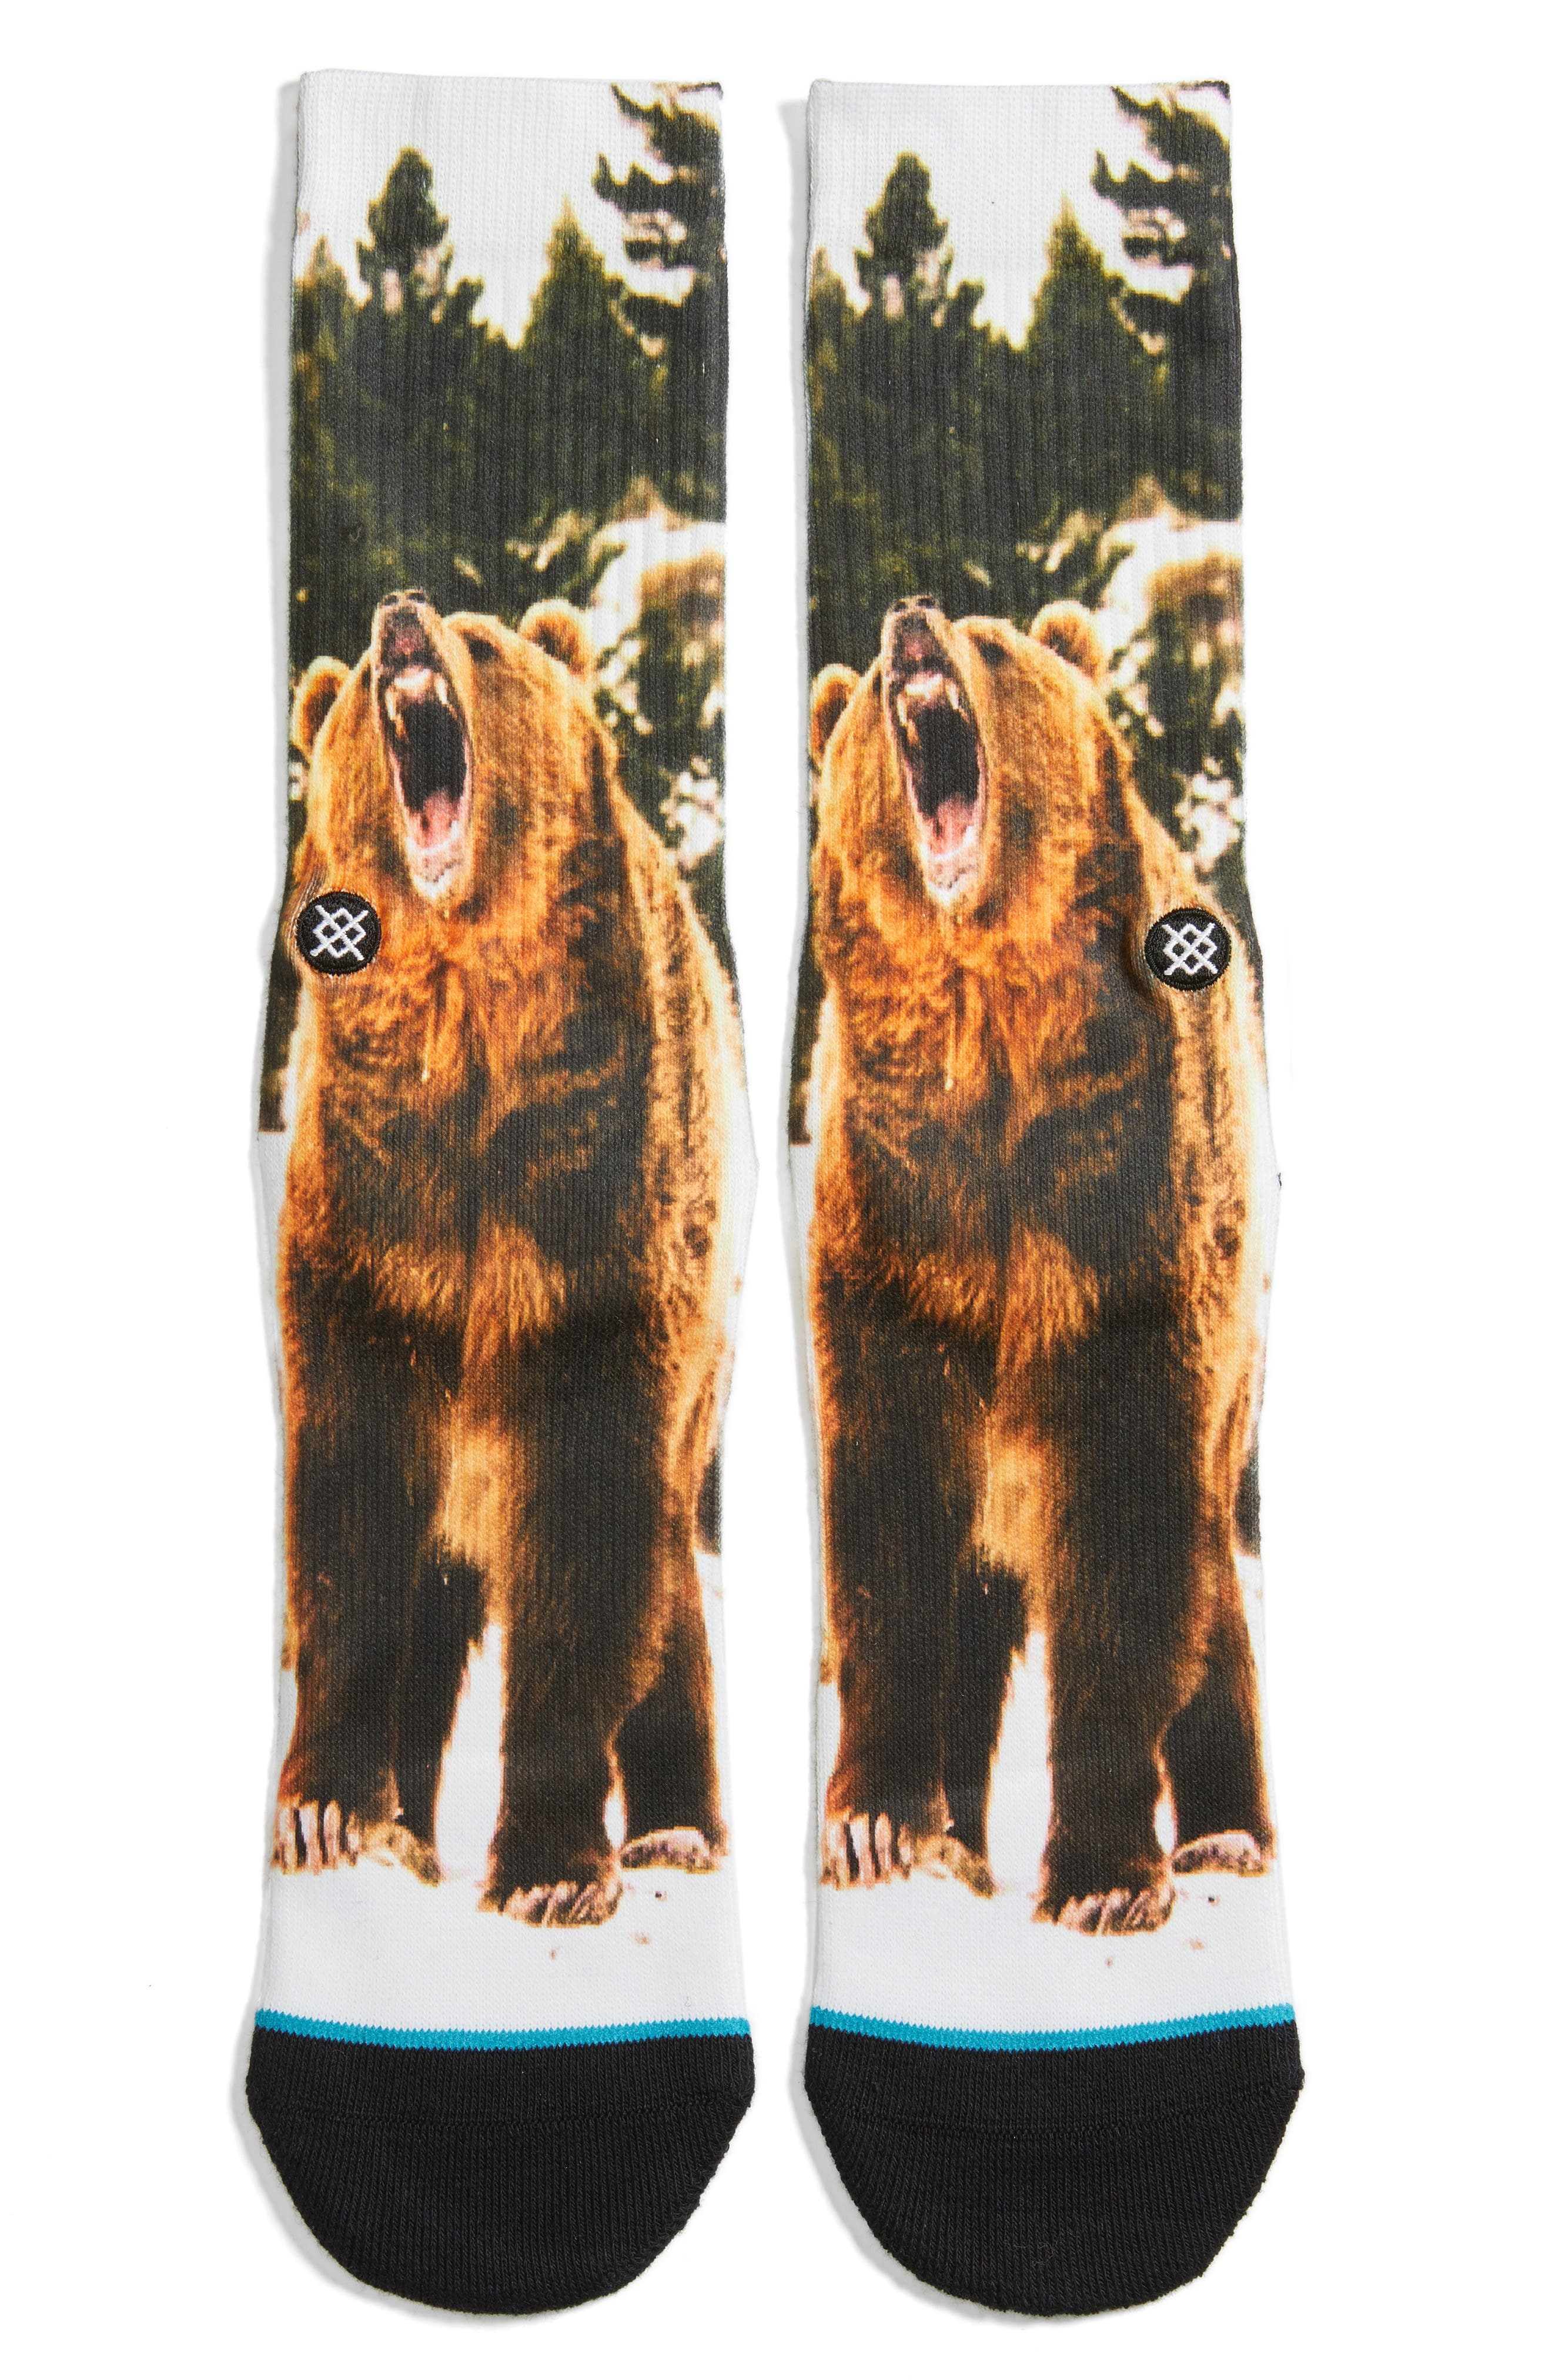 Alternate Image 1 Selected - Stance Leos Crew Socks